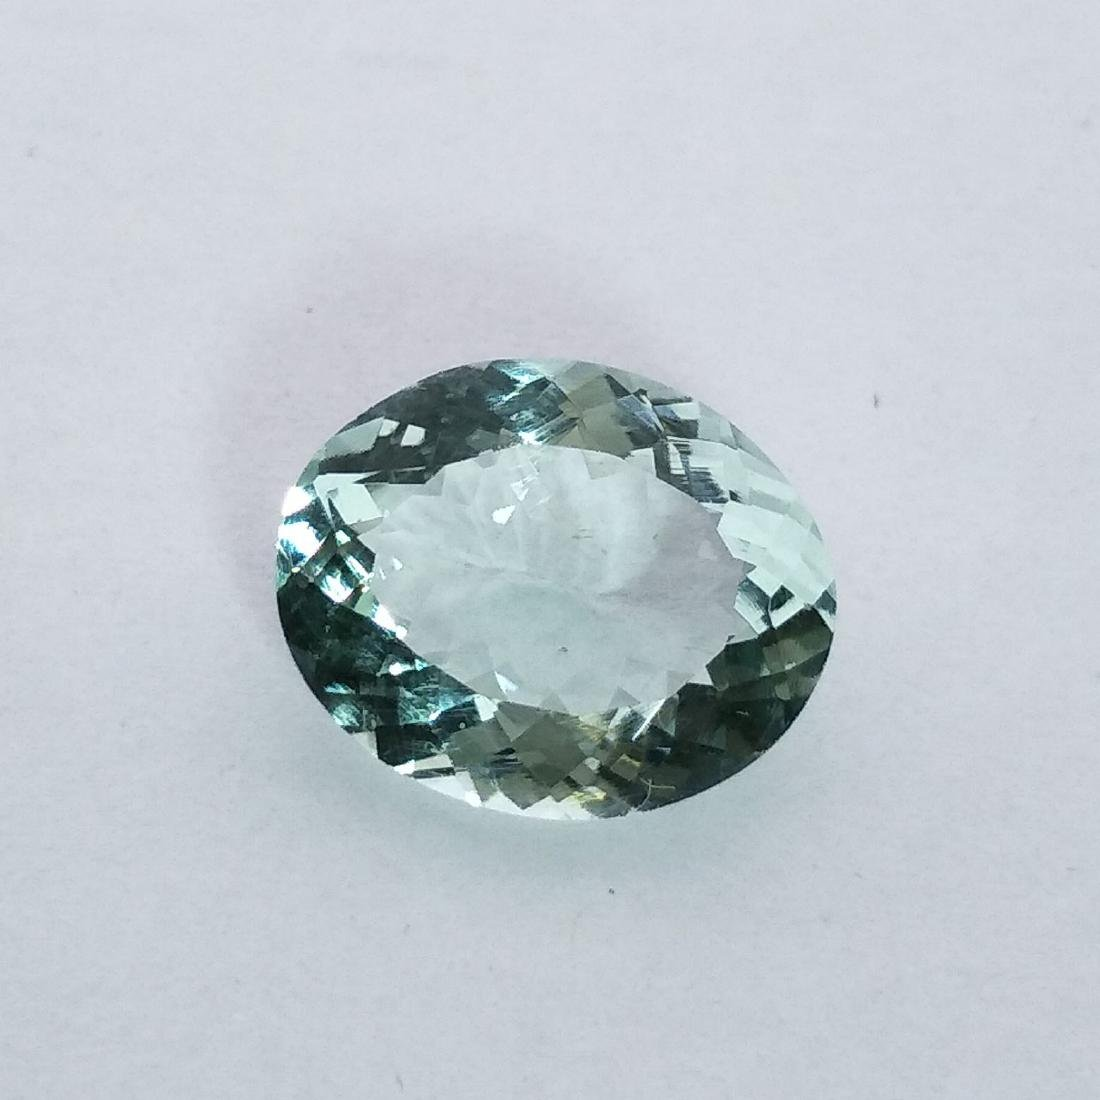 Aquamarine - 3.64 ct